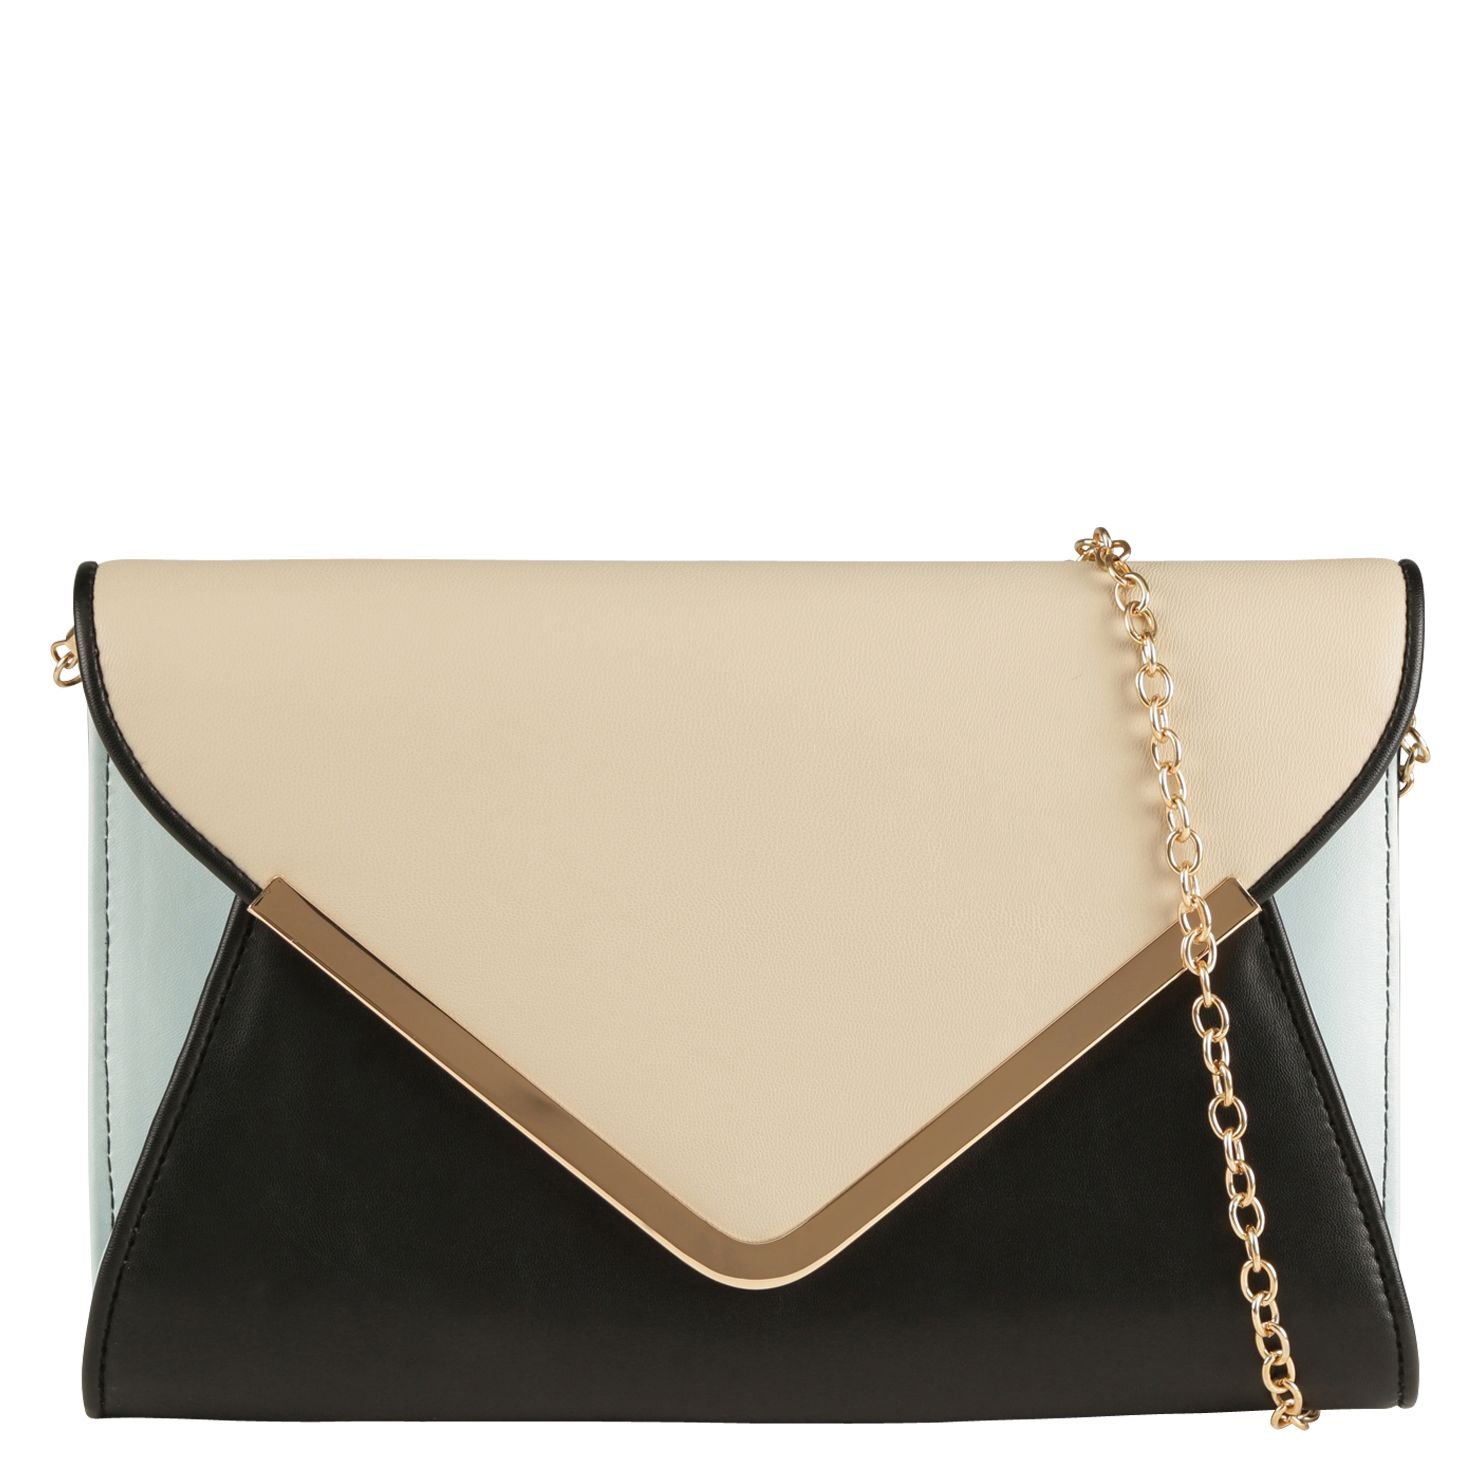 Elsmere clutch bag